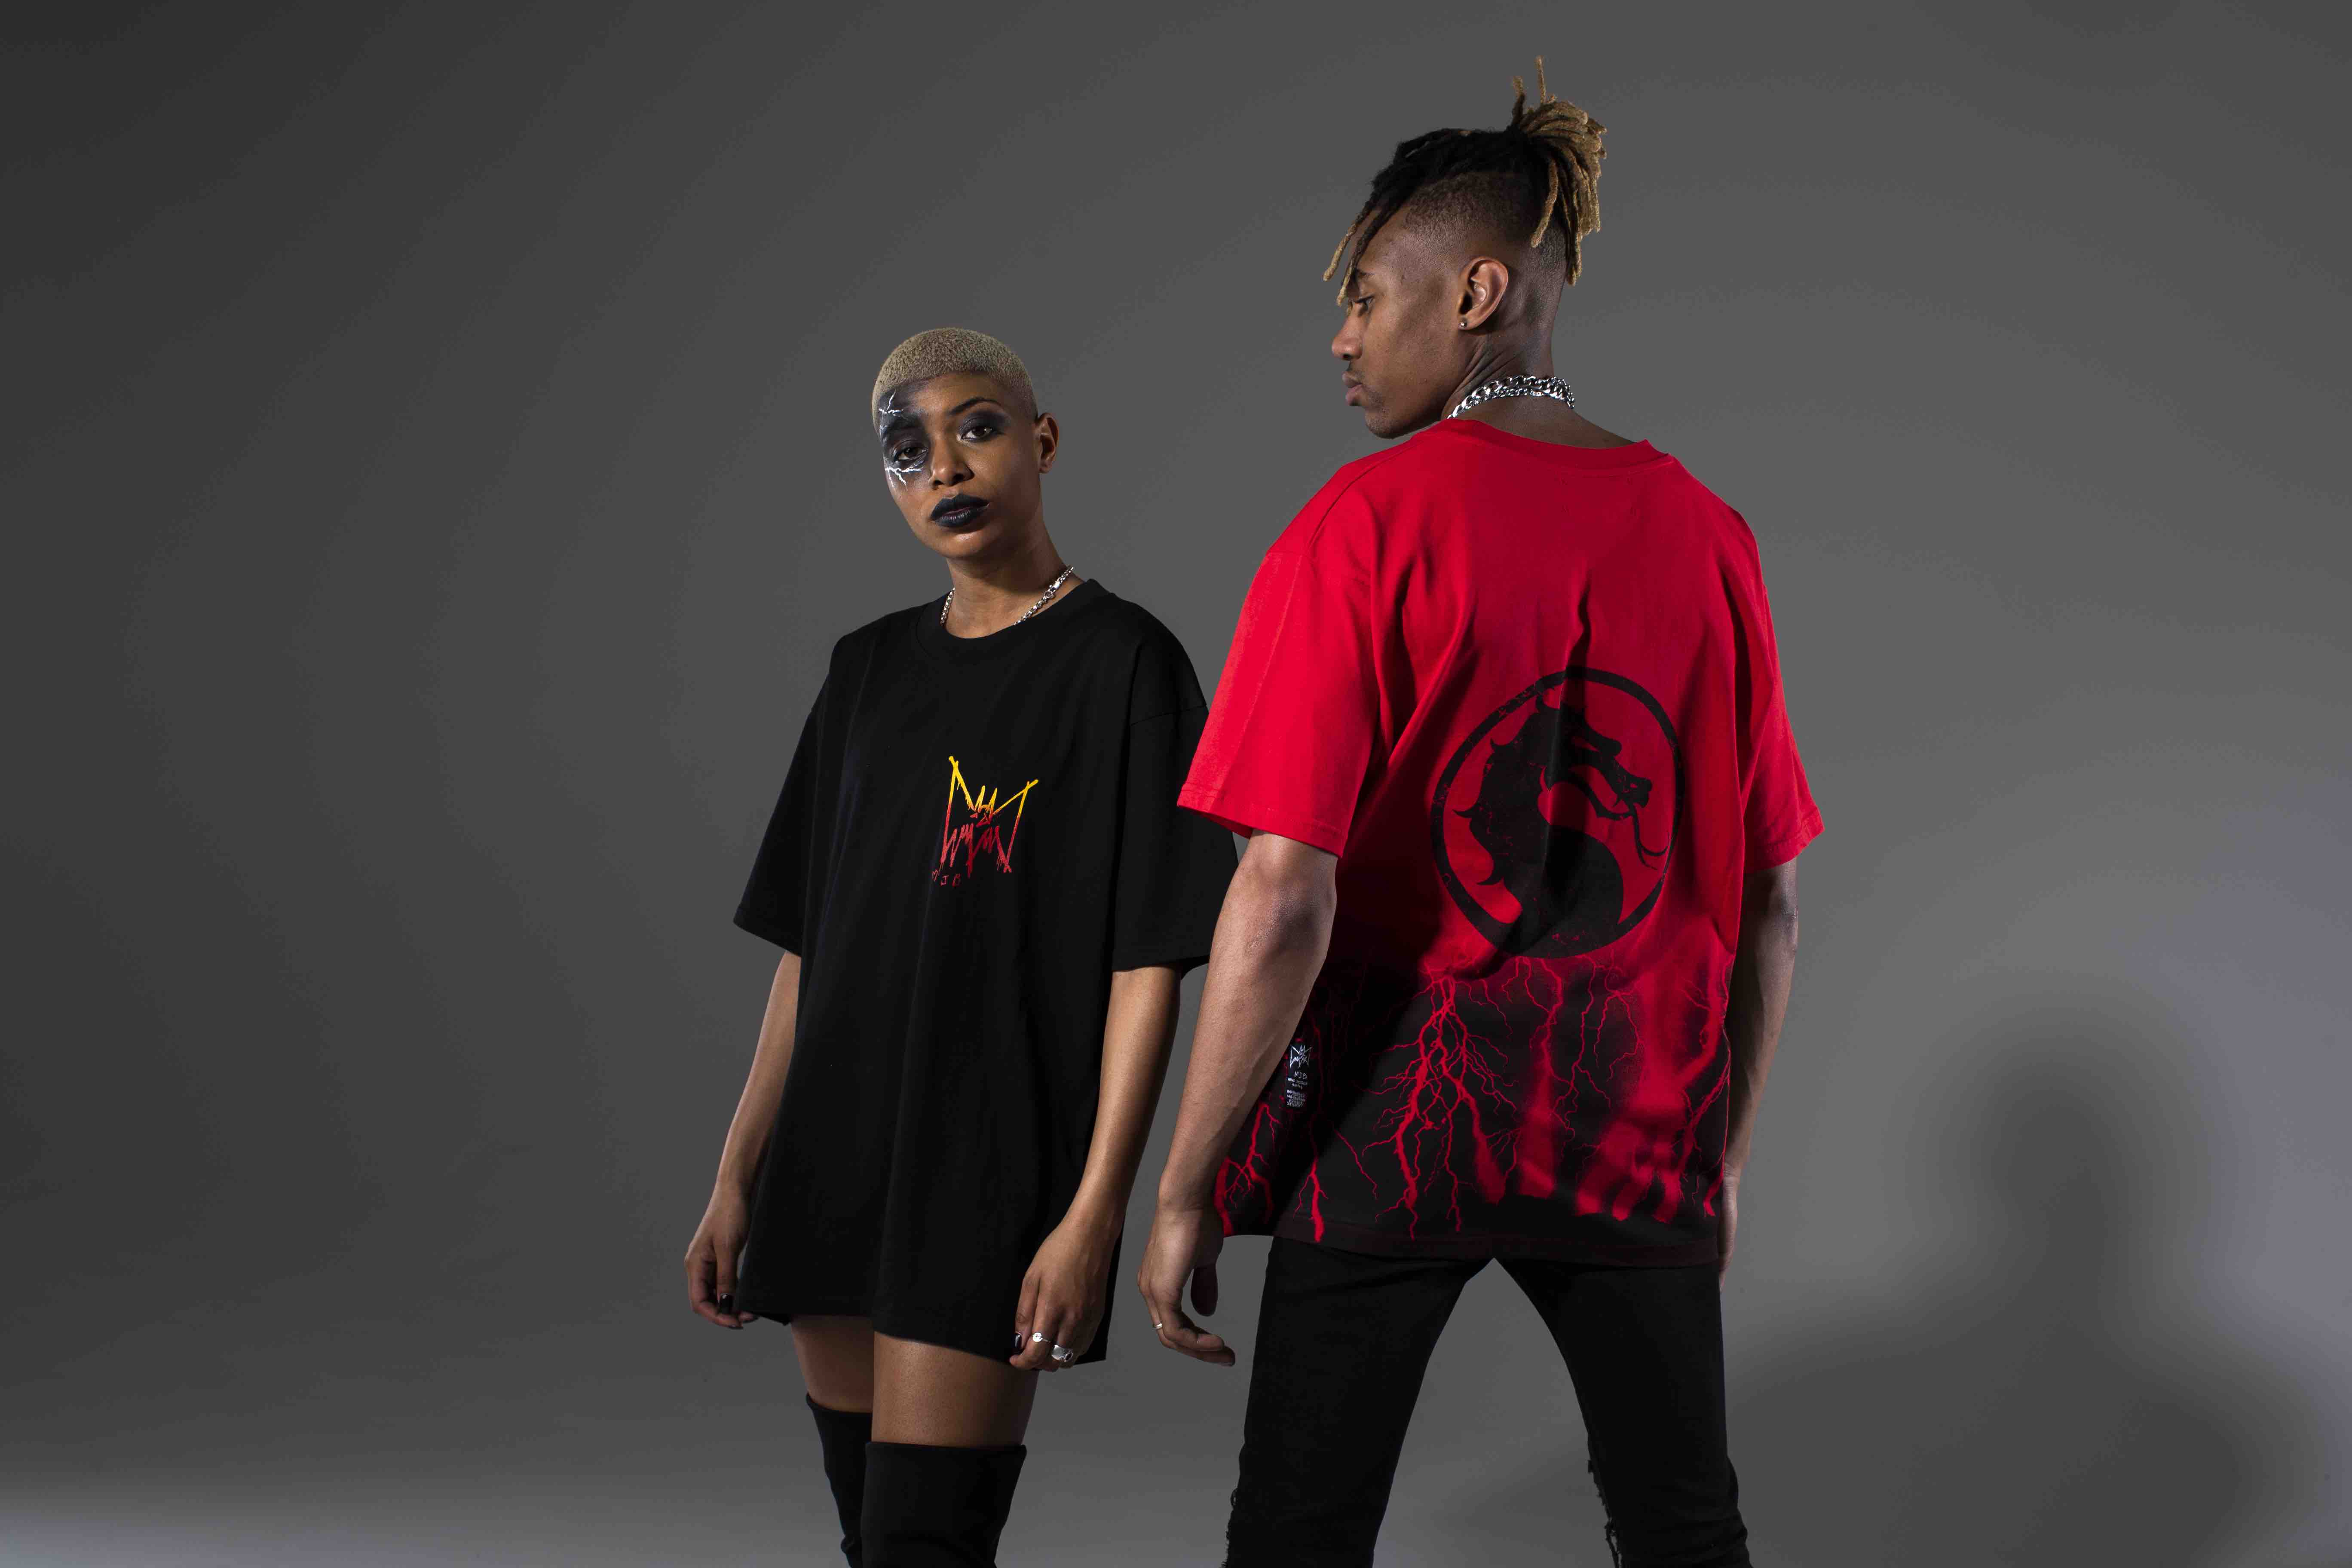 Marc Jacques Burton Mortal Kombat clothing line oversized red and black tshirts